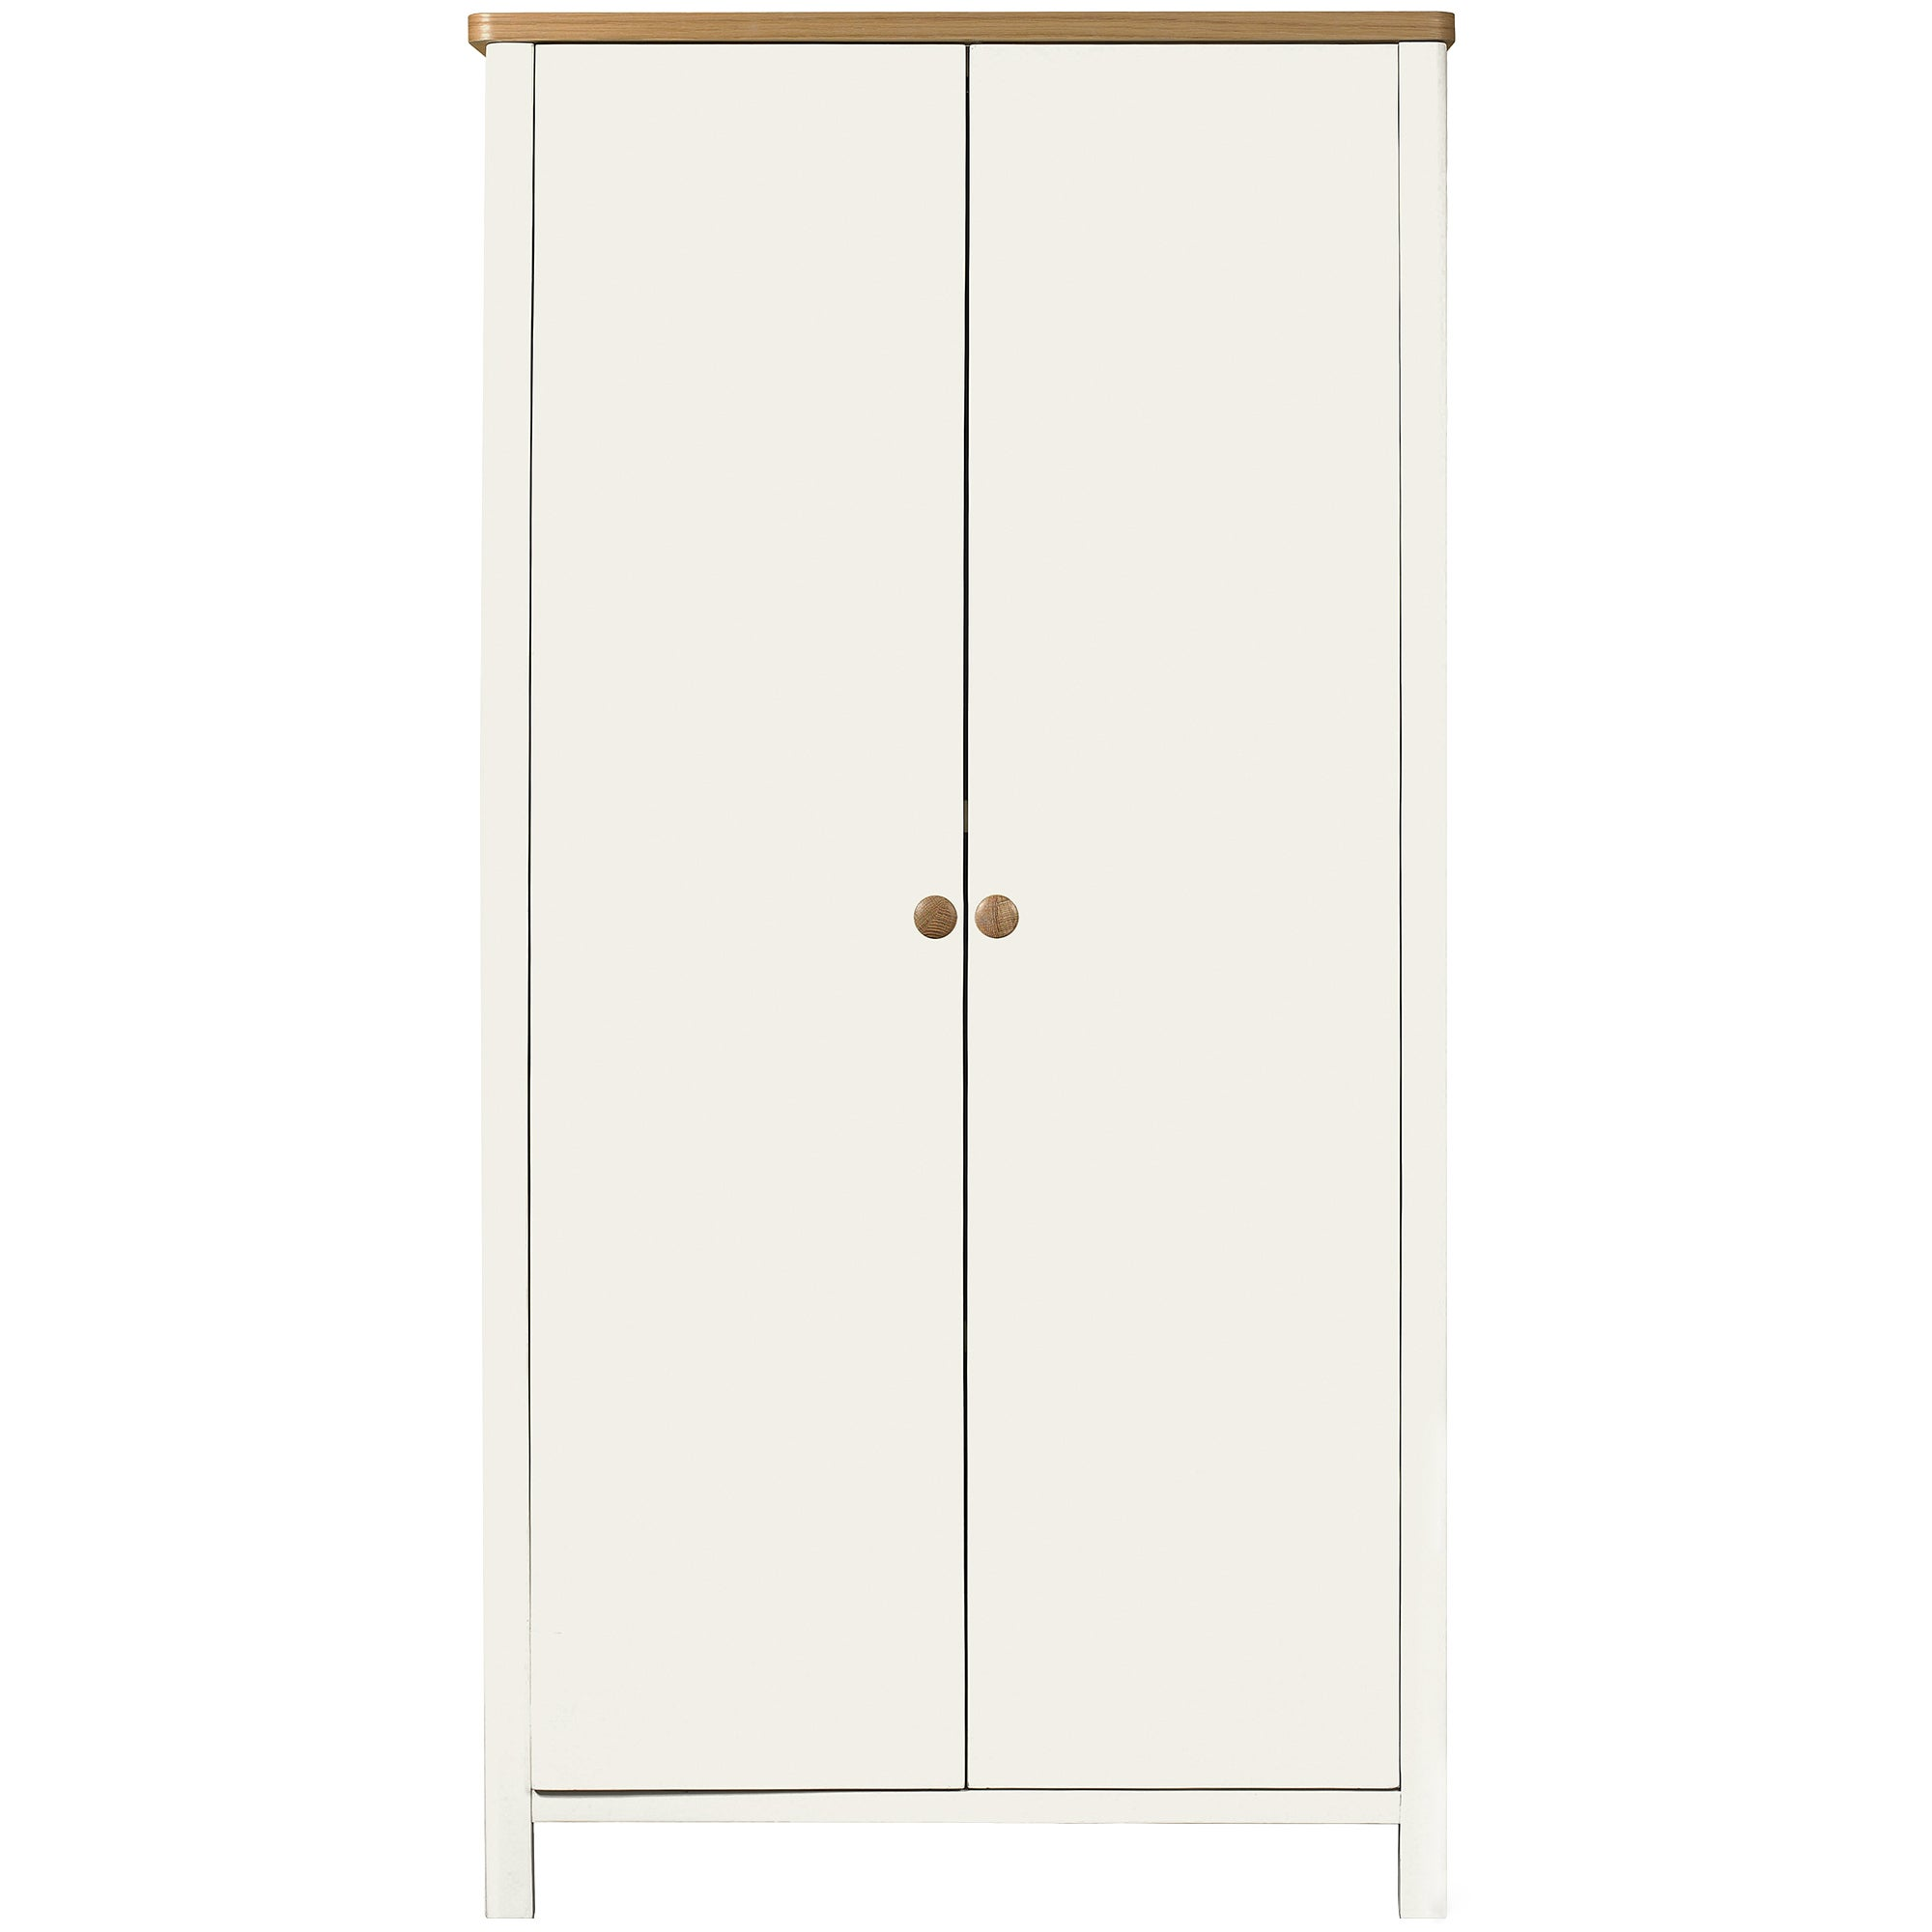 Photo of Kids morgan oak double wardrobe light brown / natural